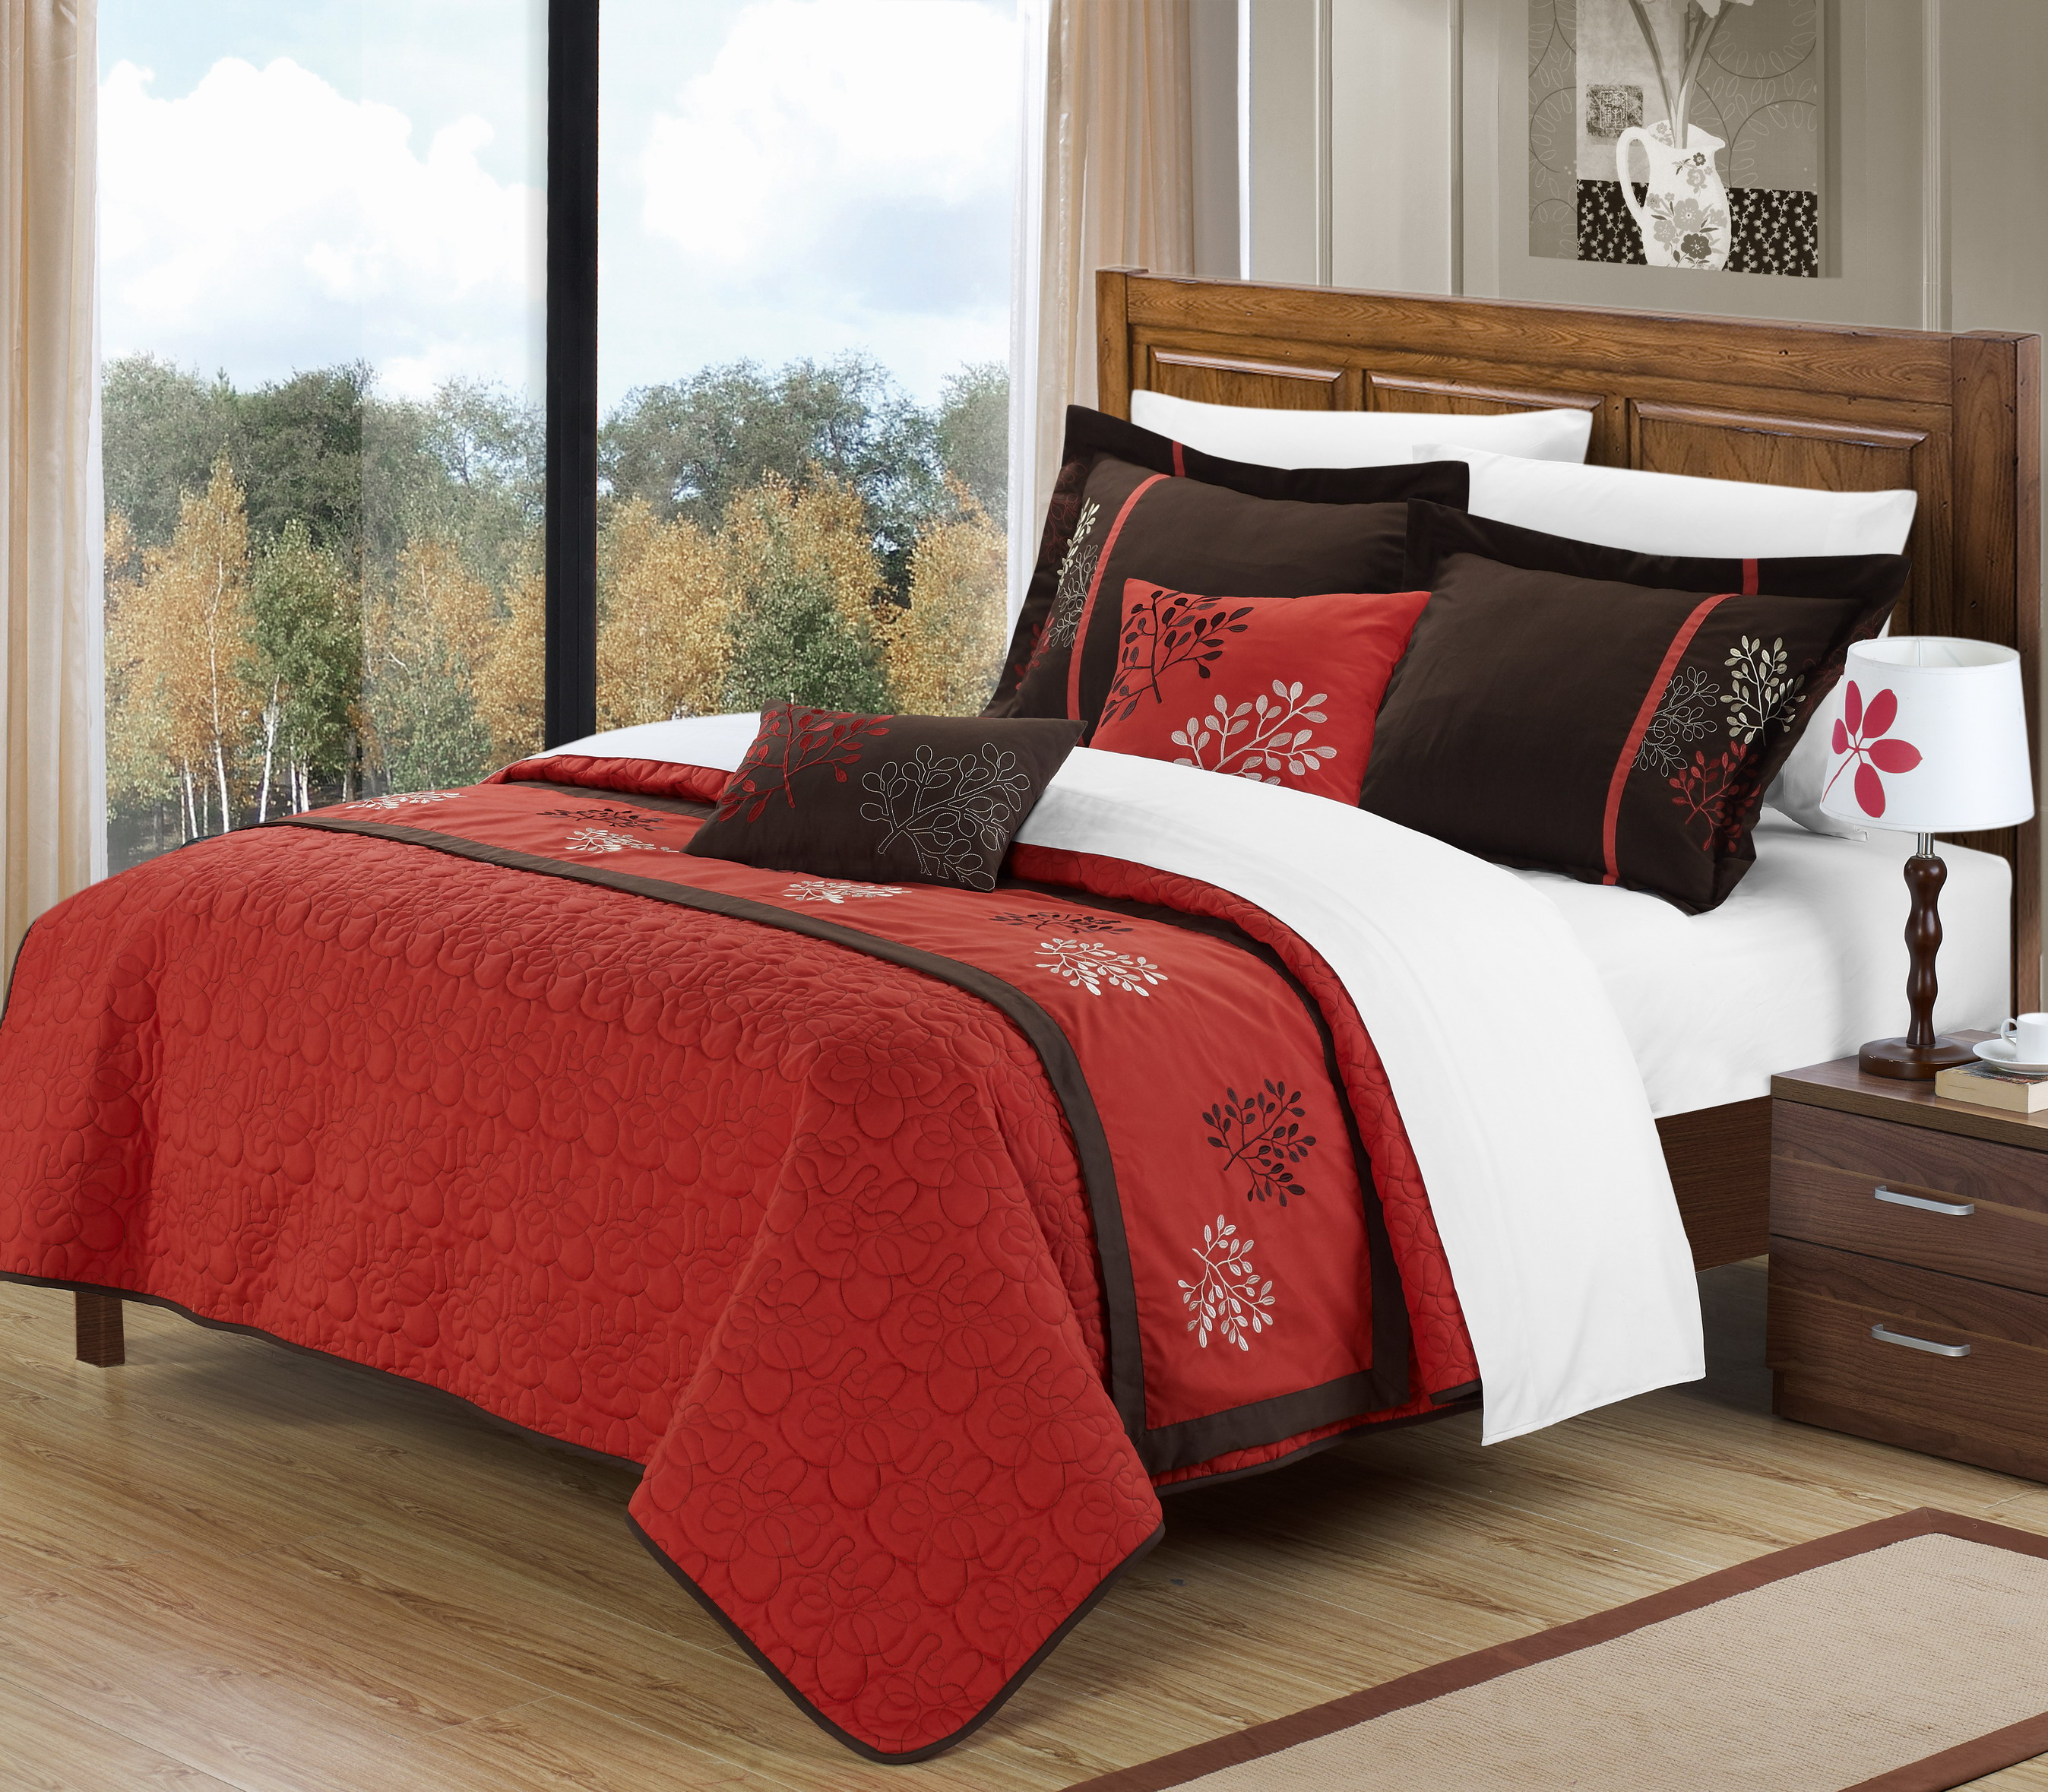 Perfect Home Forest Brick 6 Piece Queen Size Comforter Set